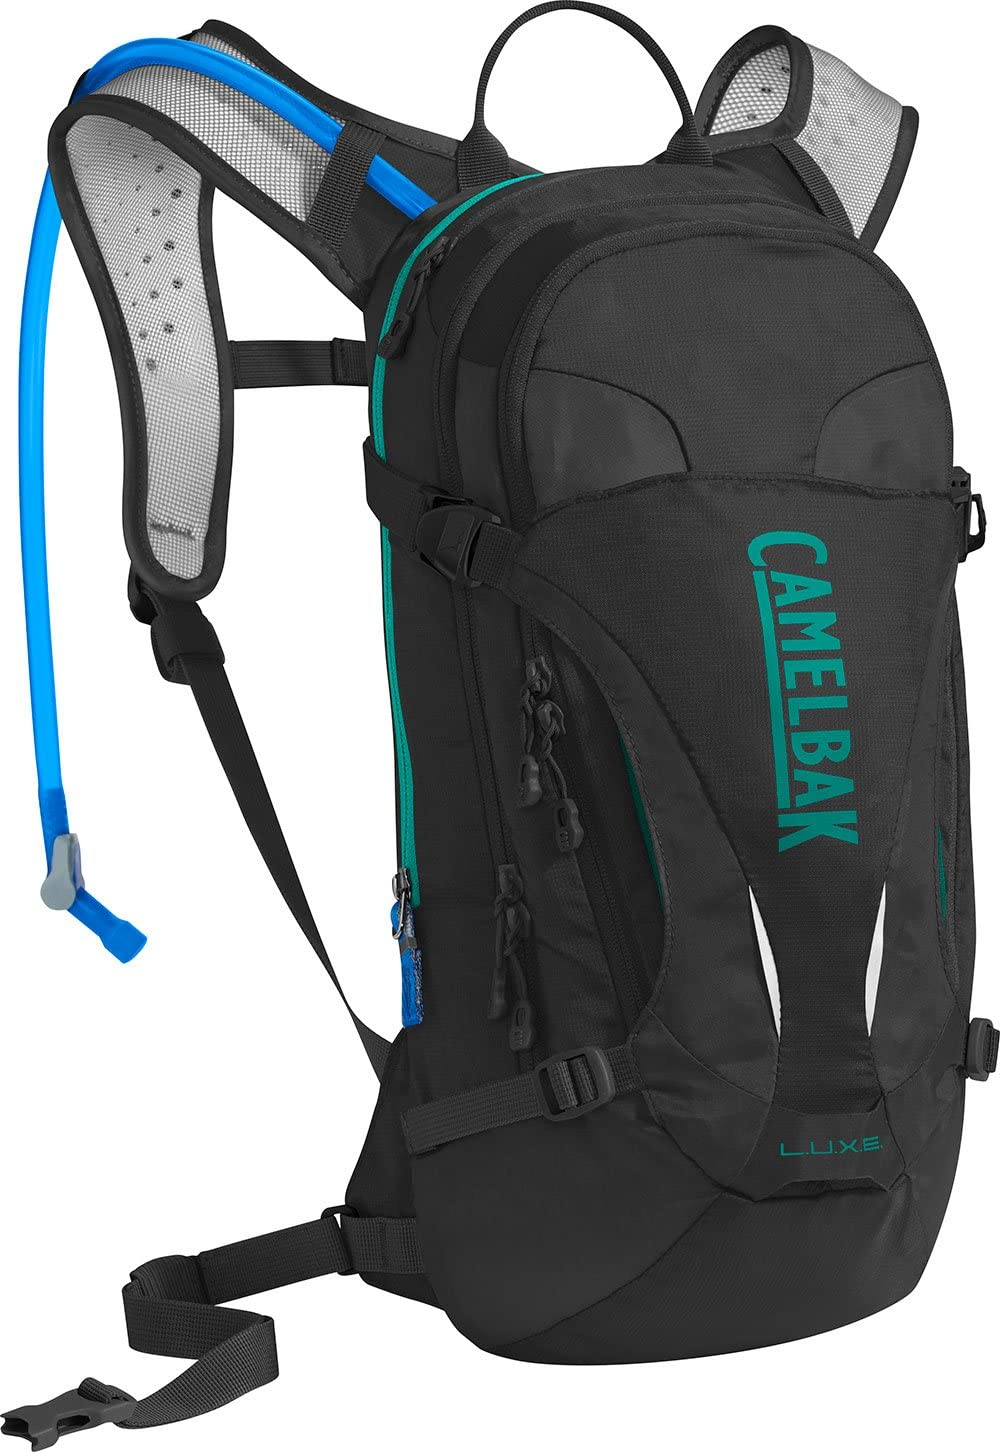 CamelBak Women s L.U.X.E. Hydration Pack, 100oz